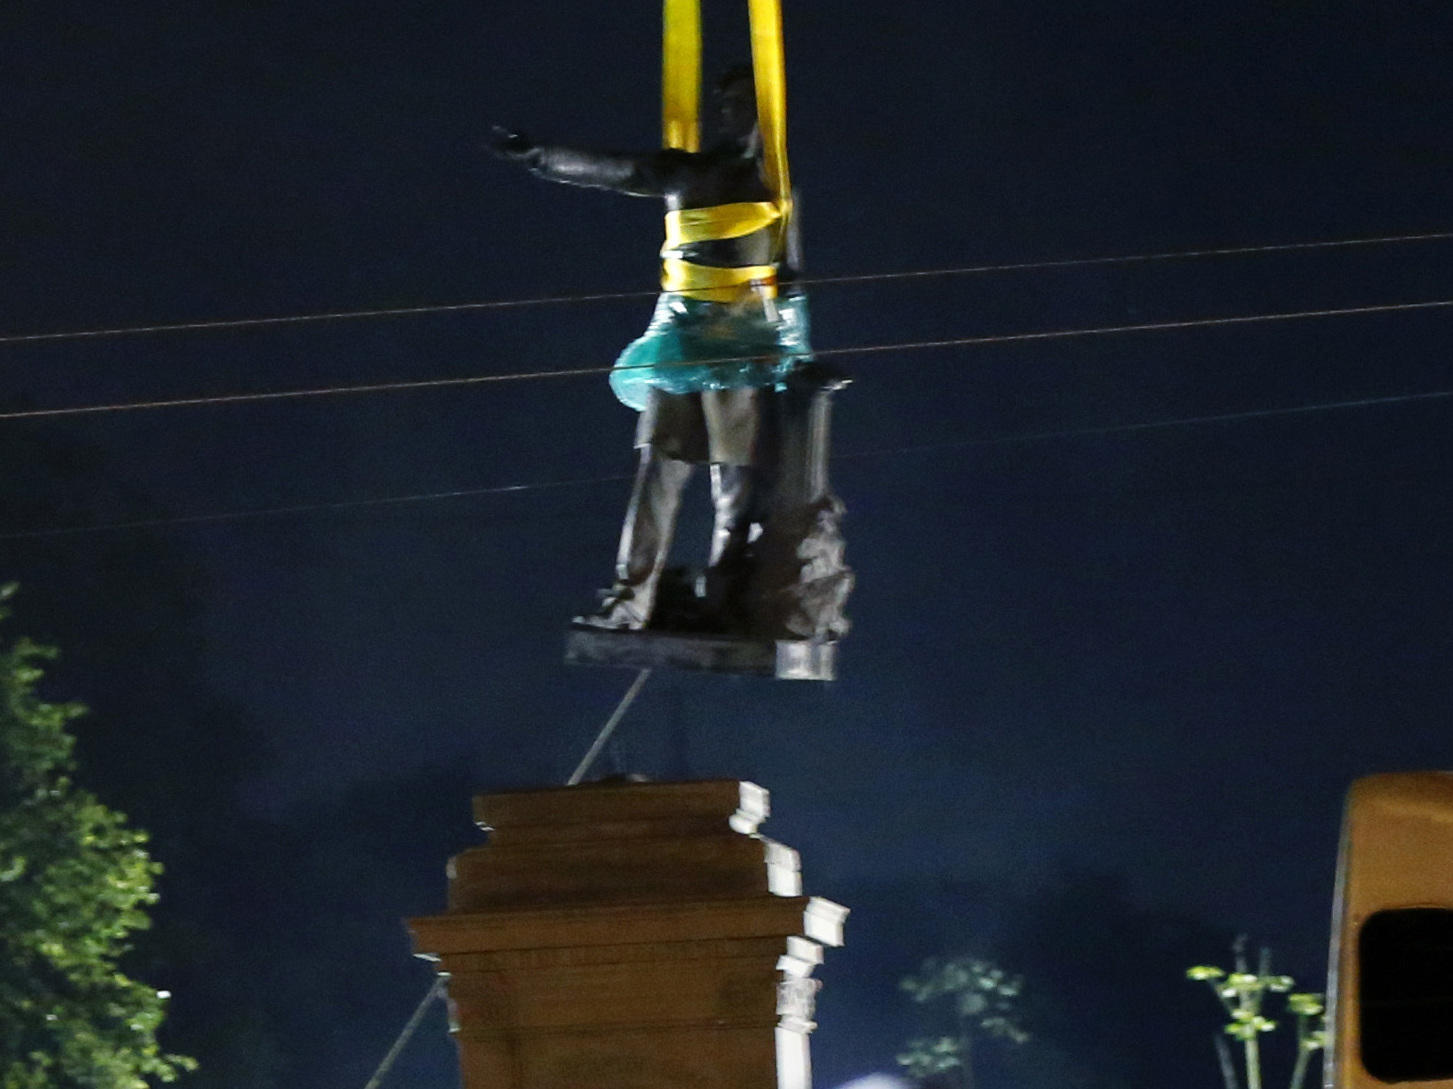 Conferederate monument in New Orleans comes down